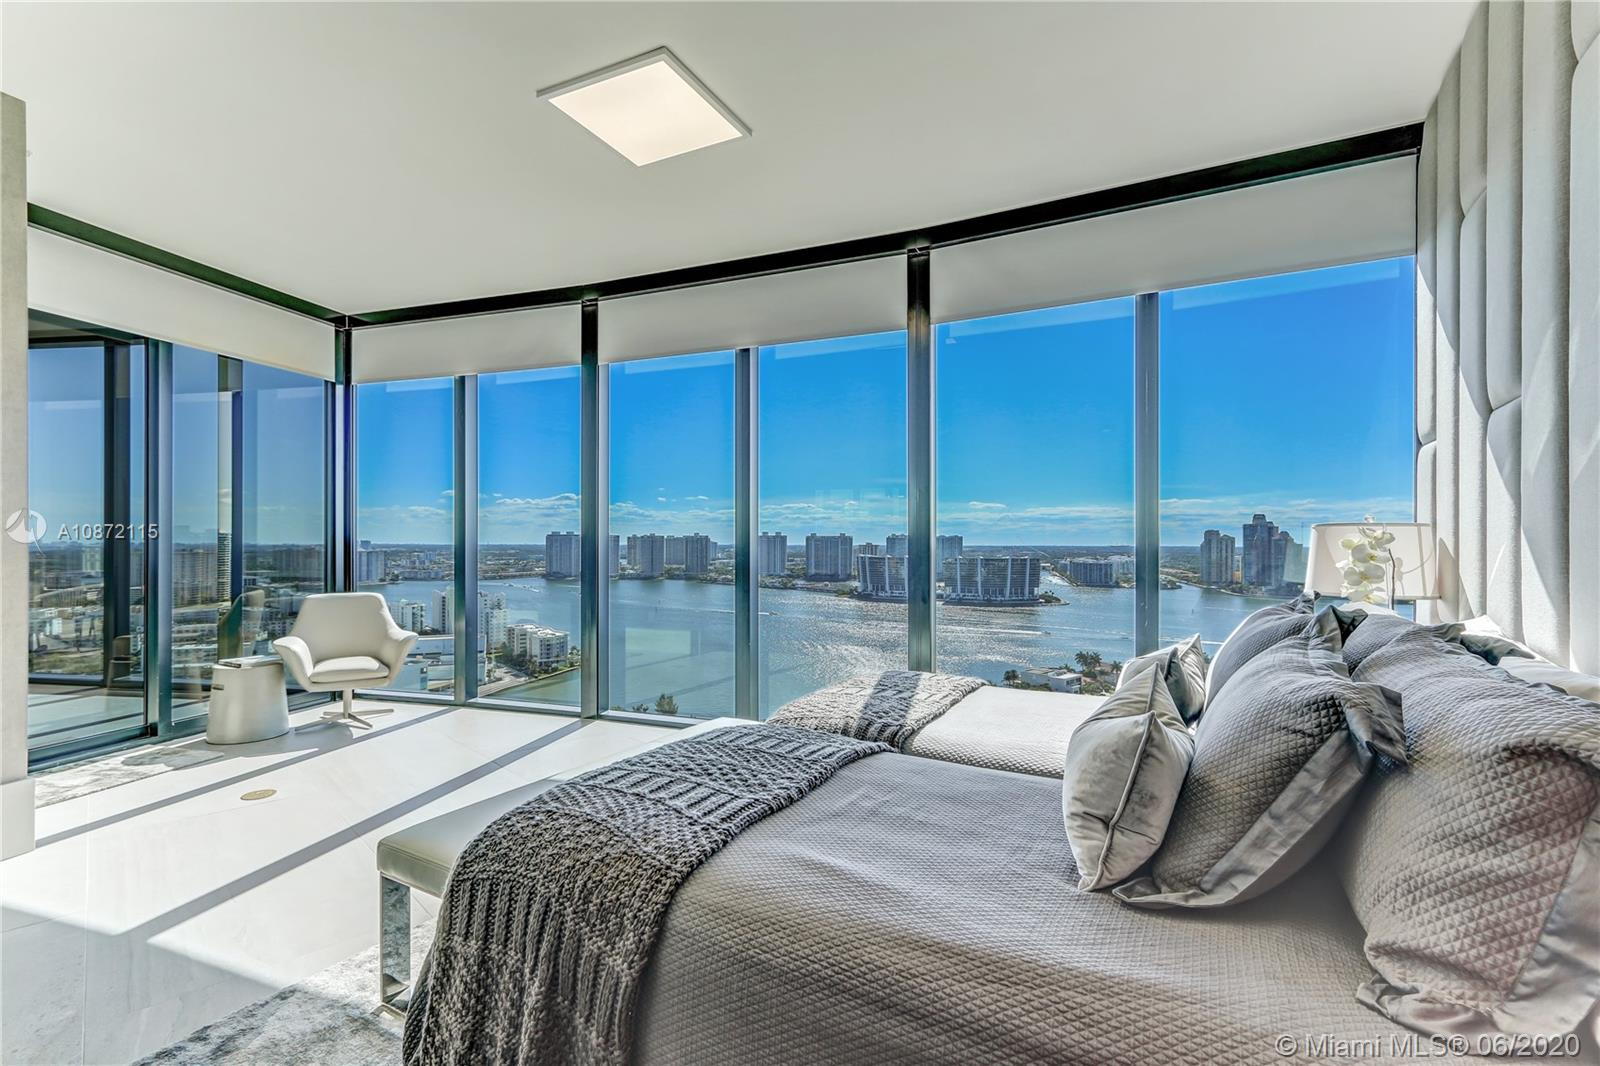 18555 Collins Ave, Unit #2503 Luxury Real Estate